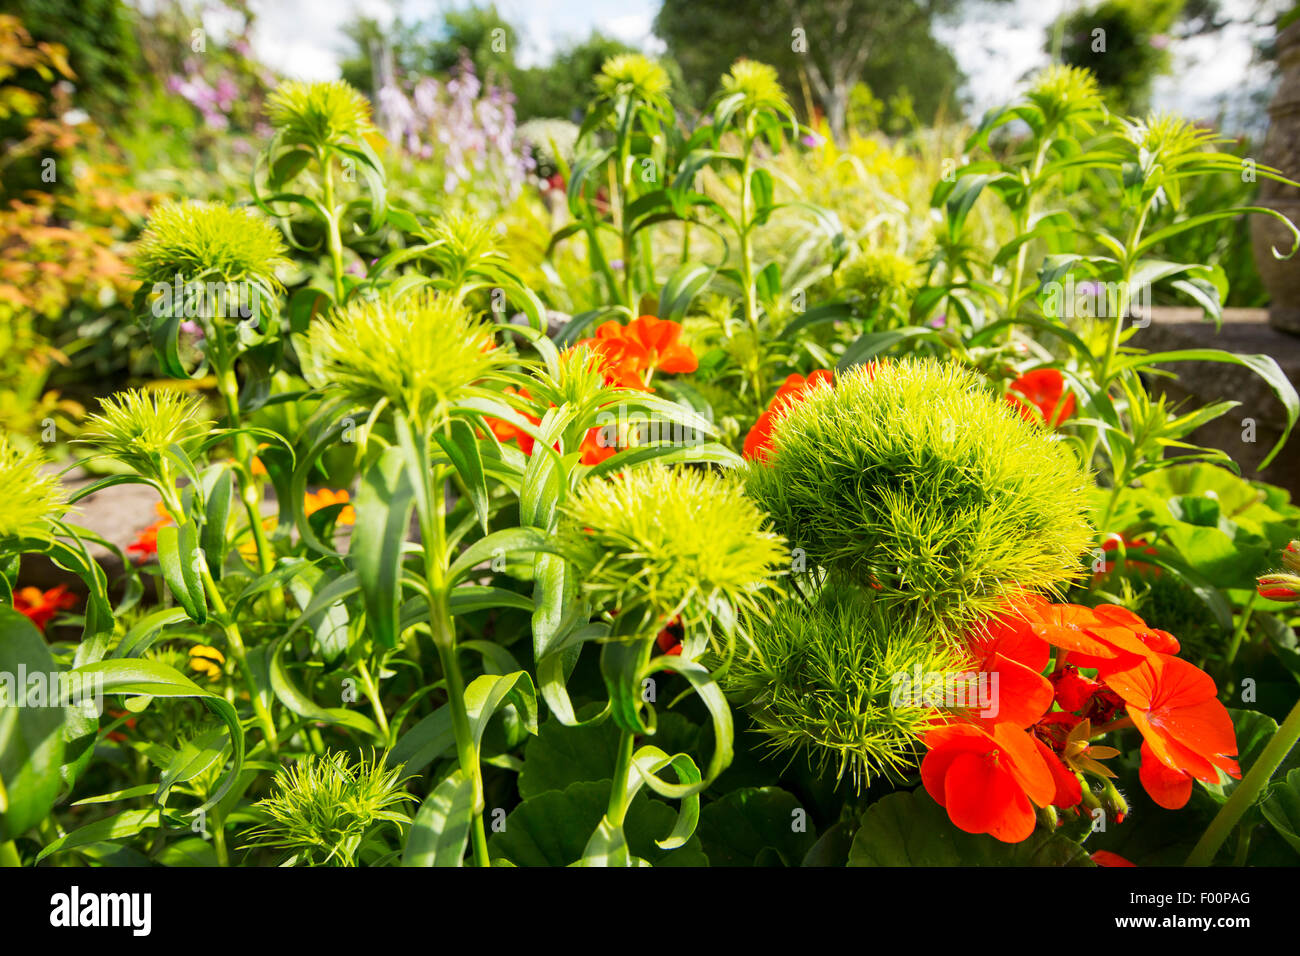 Geranium flowers and  Sweet William, Dianthus barbatus, Green Trick in a garden in Clitheroe, Lancashire, UK. - Stock Image